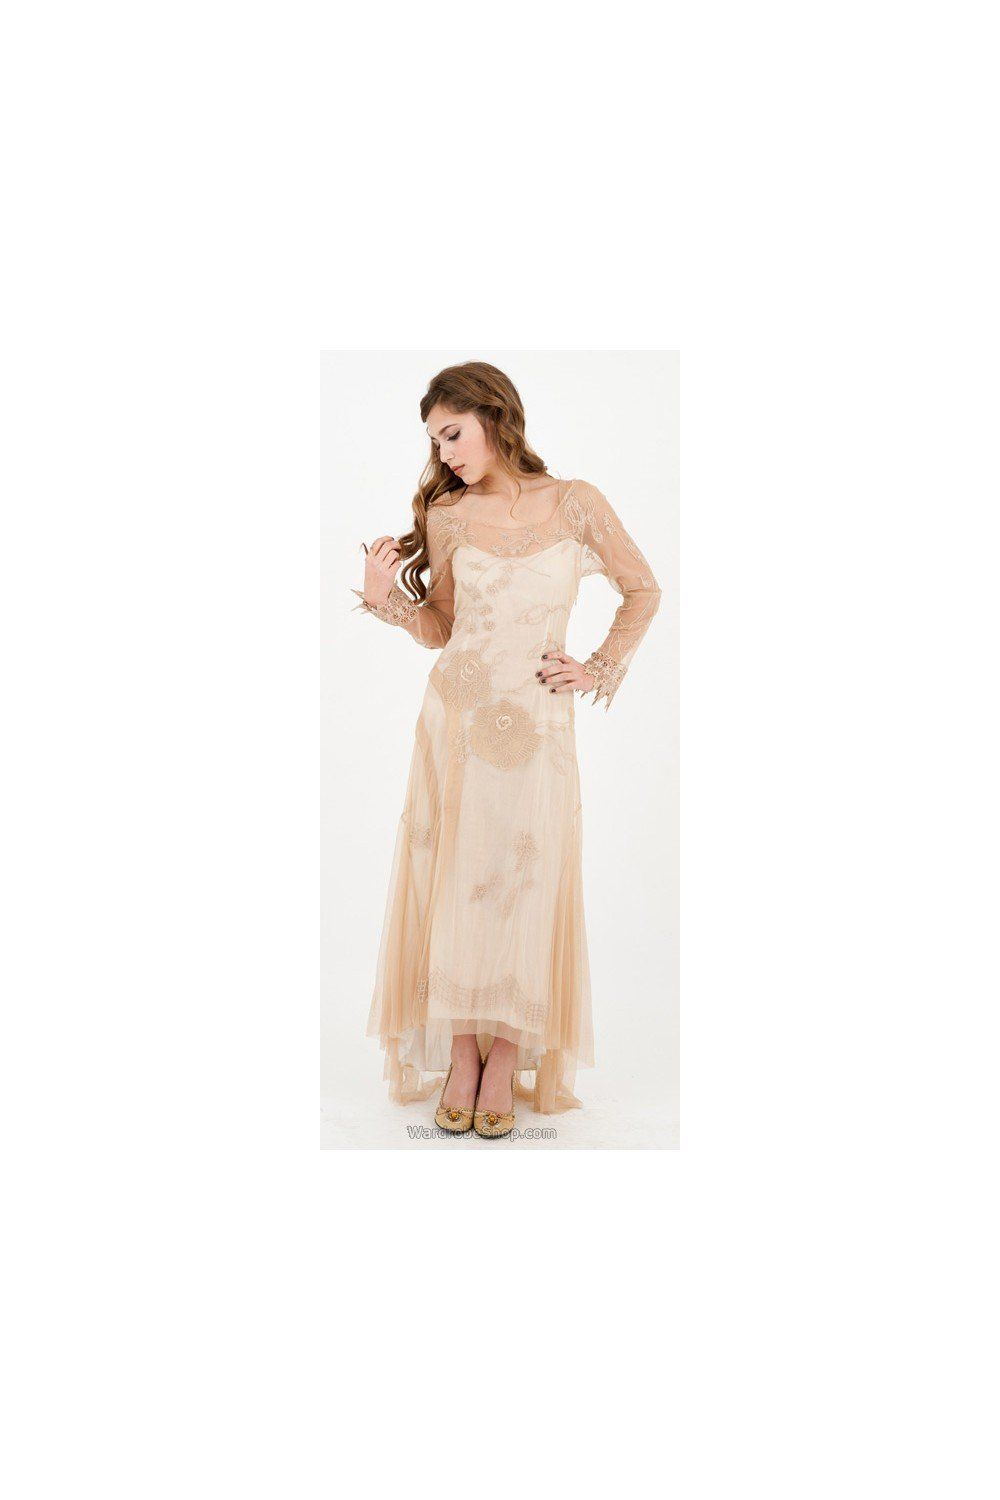 Morning wedding dresses  Romantic Morning Wedding Gown by Nataya  SOLD OUT  Gowns Romantic